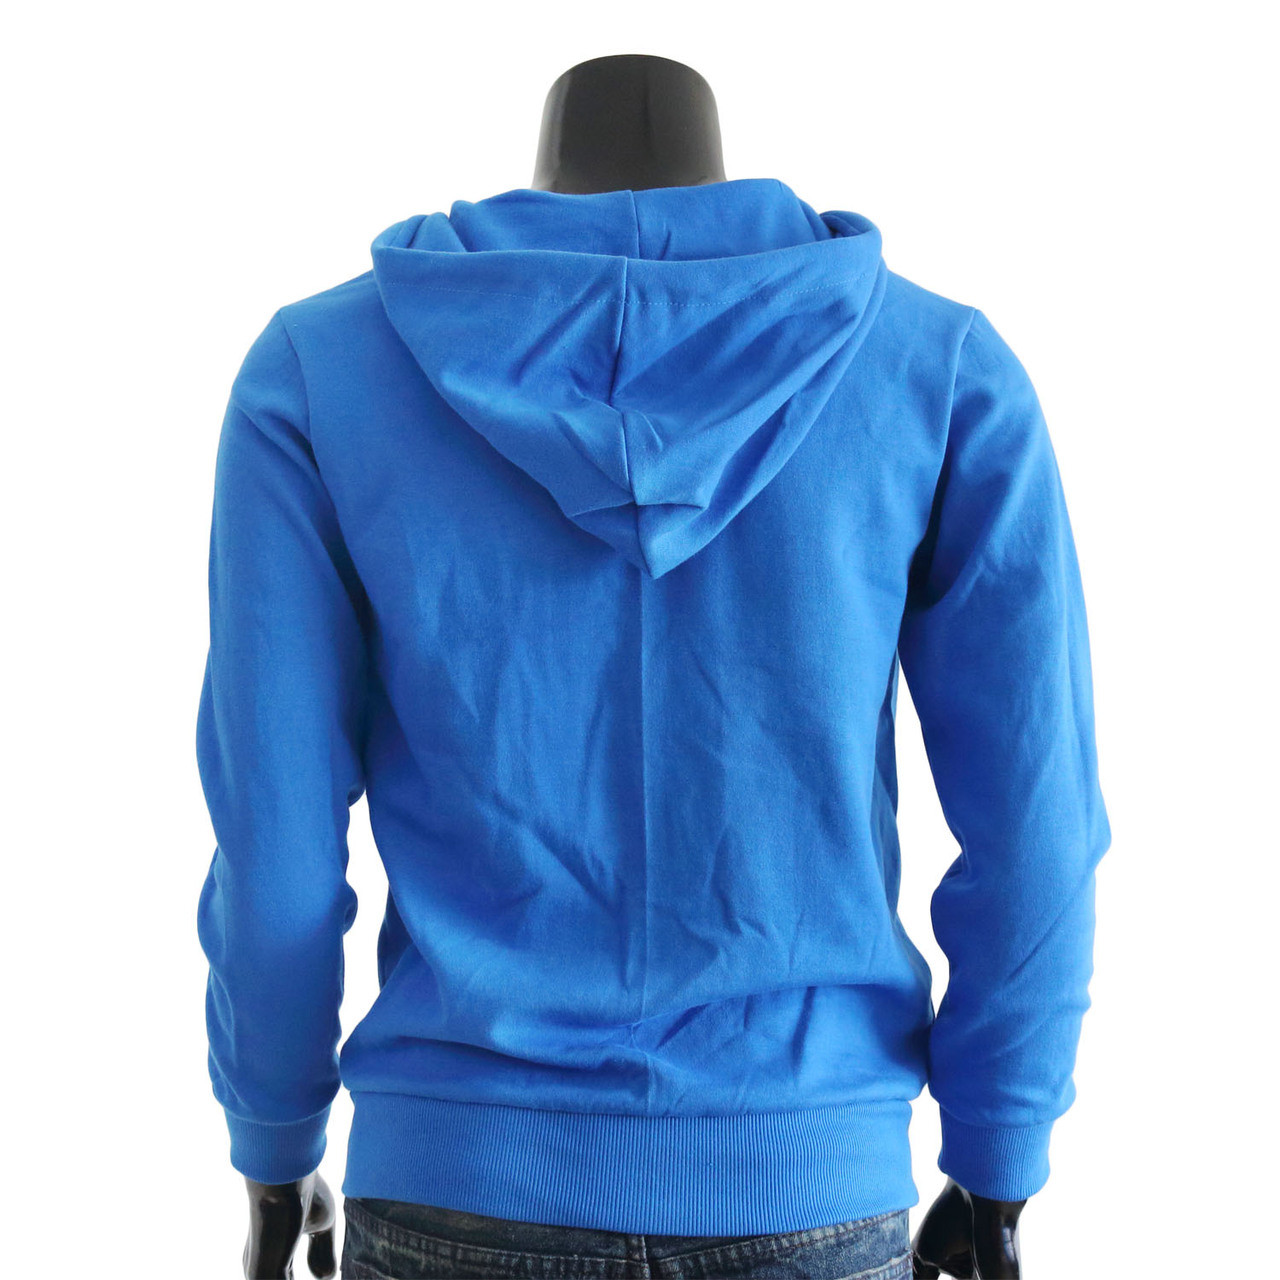 bf5318473aad Blue hoodie t-shirt for unisex cotton hoodie t-shirt men hoodie t-shirt,  women hoodie